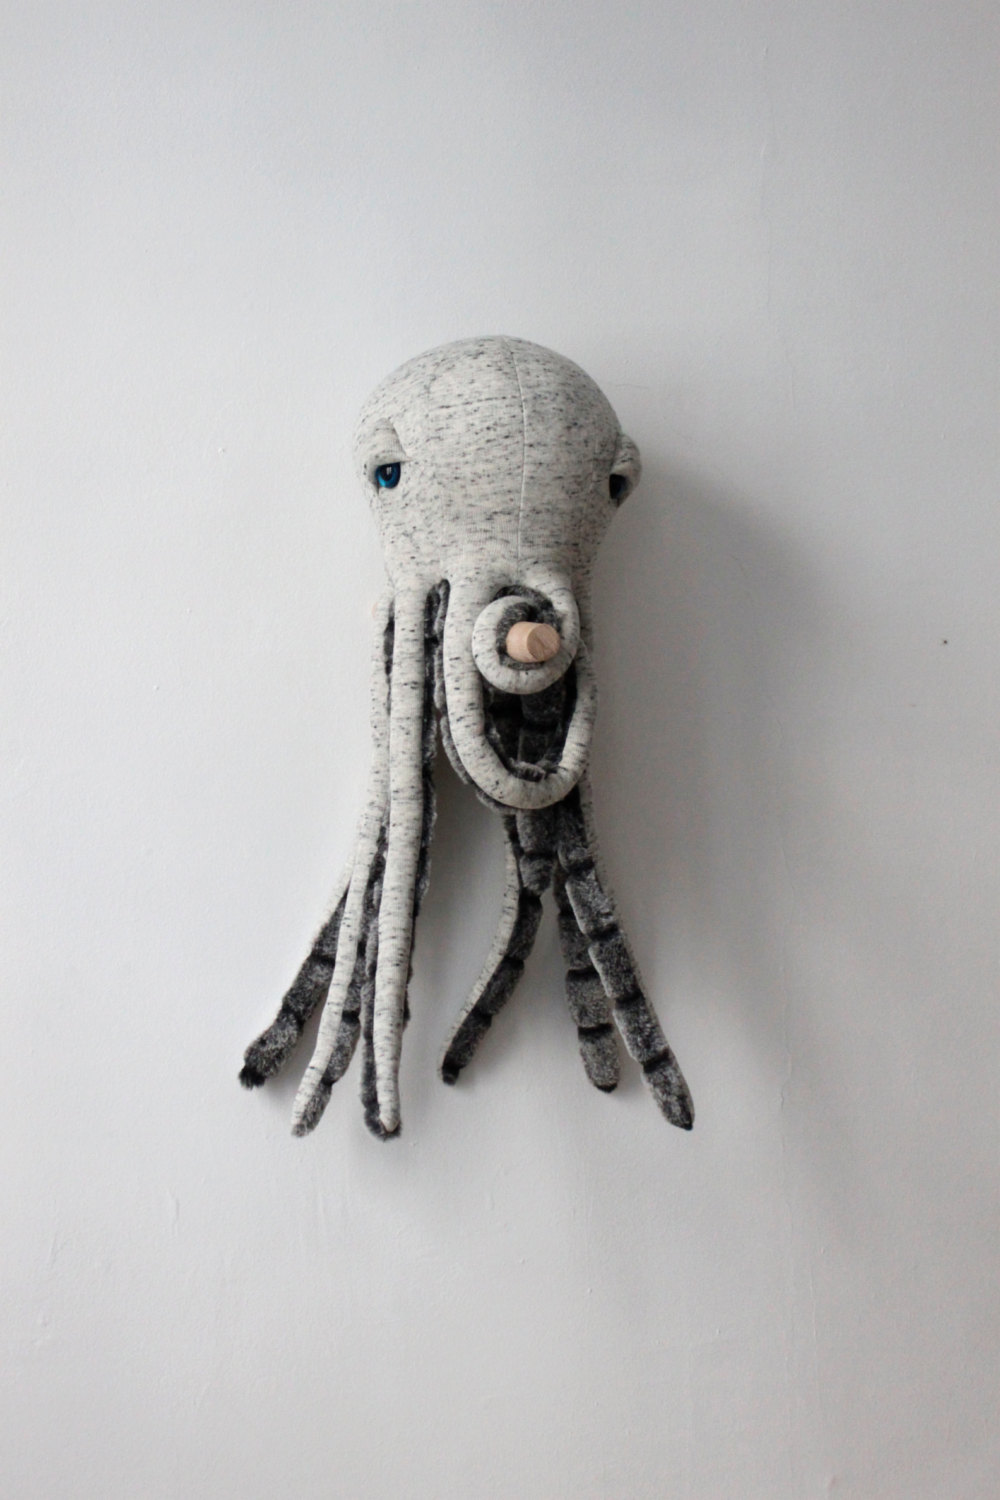 big-stuffed-octopus-animal-etsy-paris-2